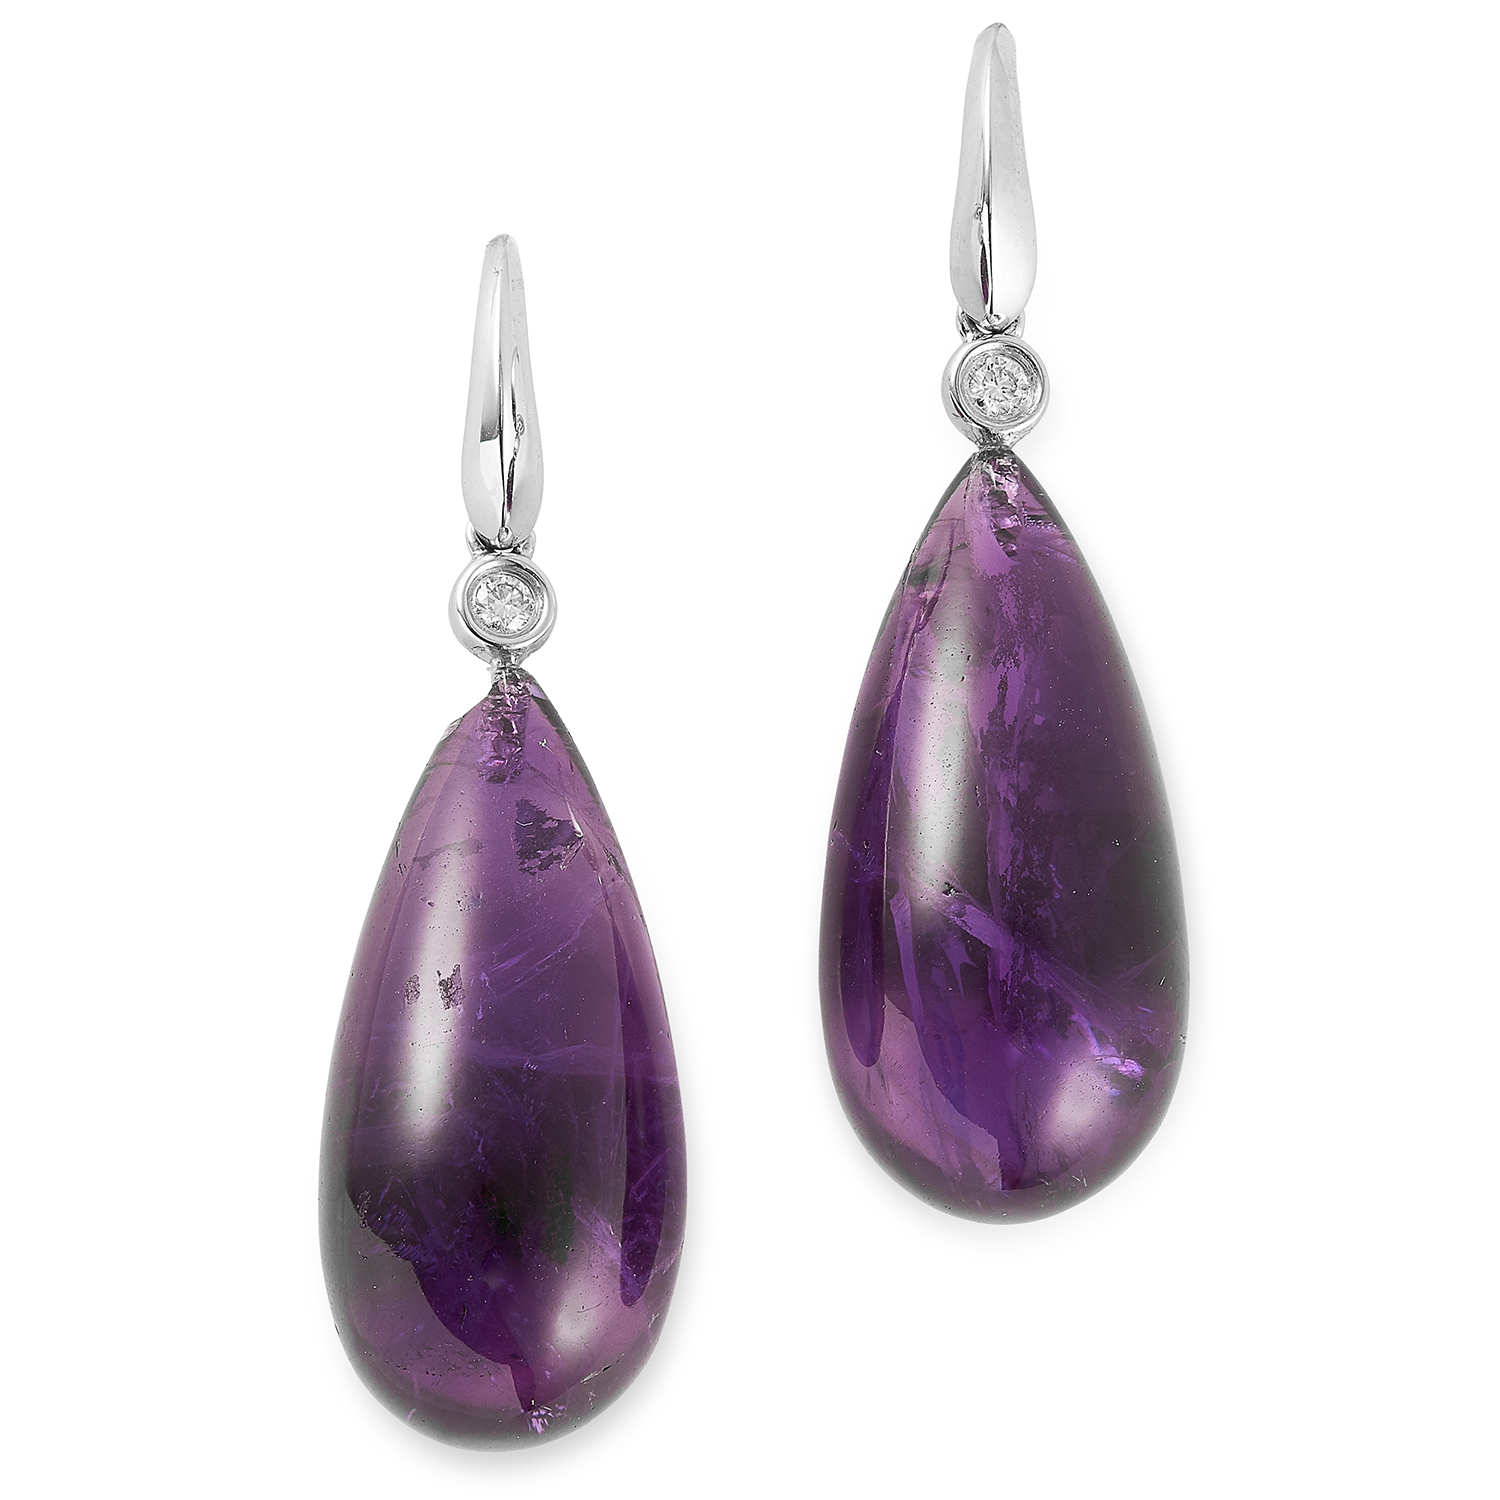 Los 33 - AMETHYST AND DIAMOND DROP EARRINGS set with polished amethyst drops and round cut diamonds, 4cm,